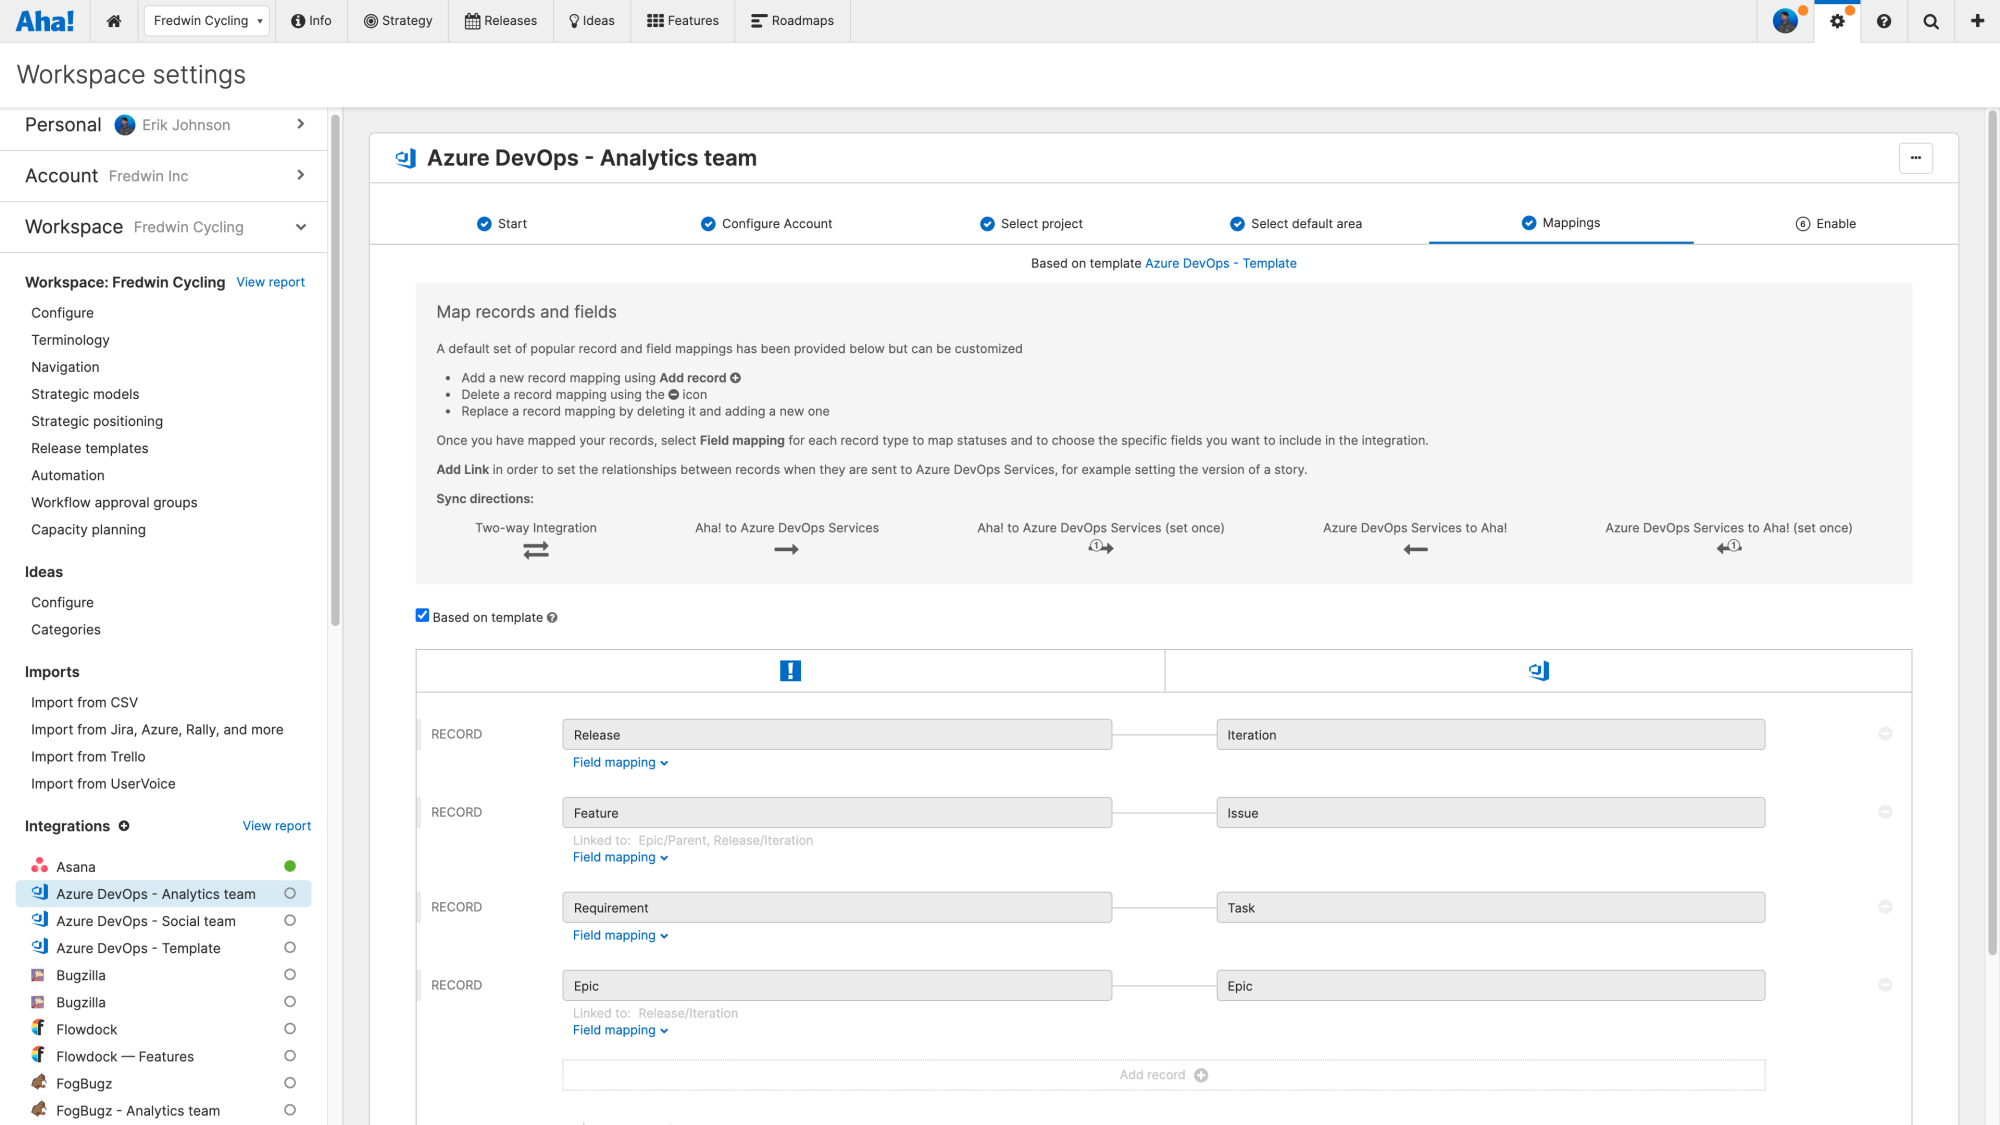 Azure Devops integration configuration on the Mappings step